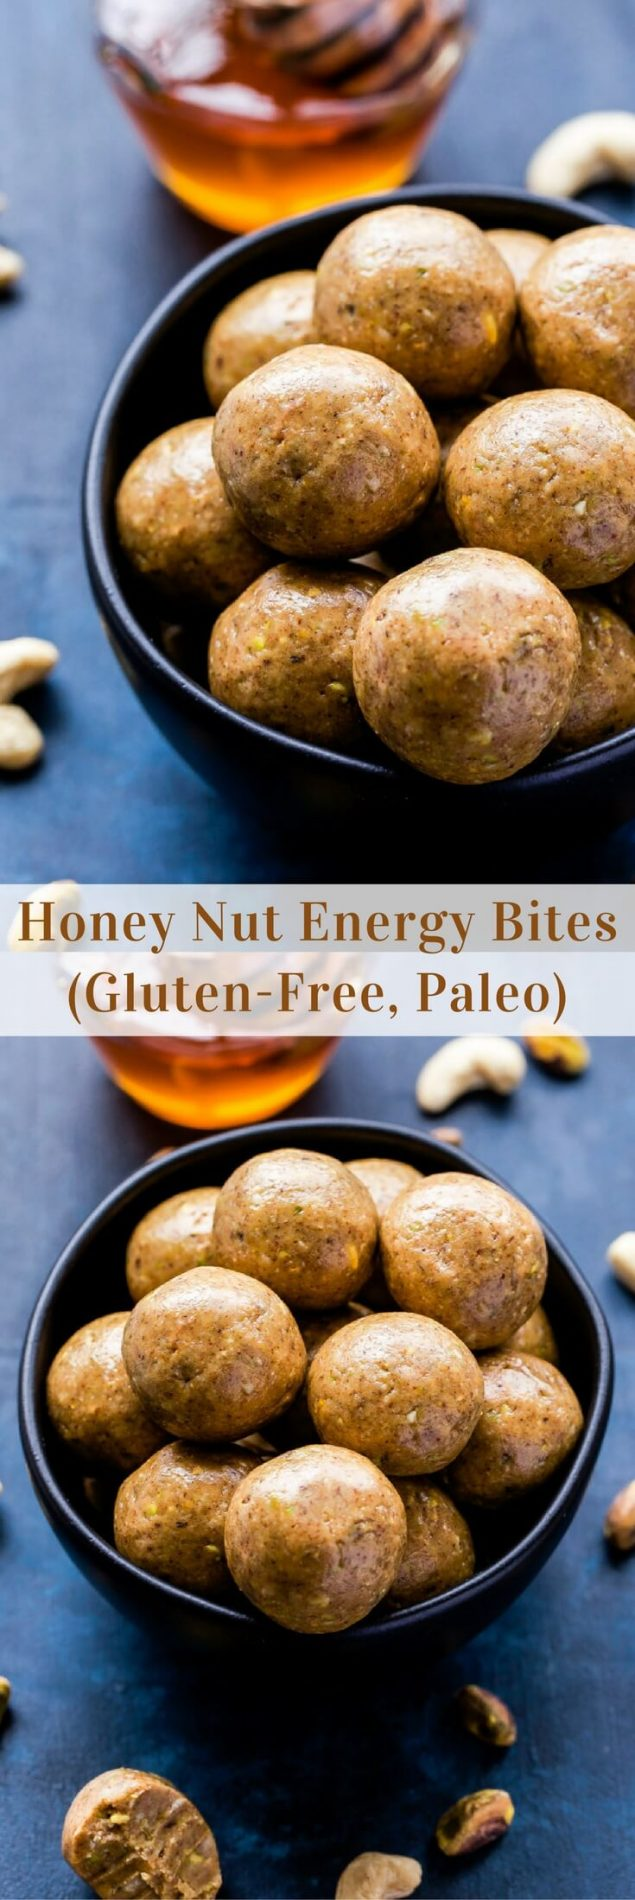 Honey Nut Energy Bites taste exactly as the name suggests. They're perfect for pre-workout fuel, an afternoon snack or a healthy after dinner treat! #energybites #honey #paleo #glutenfree #snack #healthy #nuts